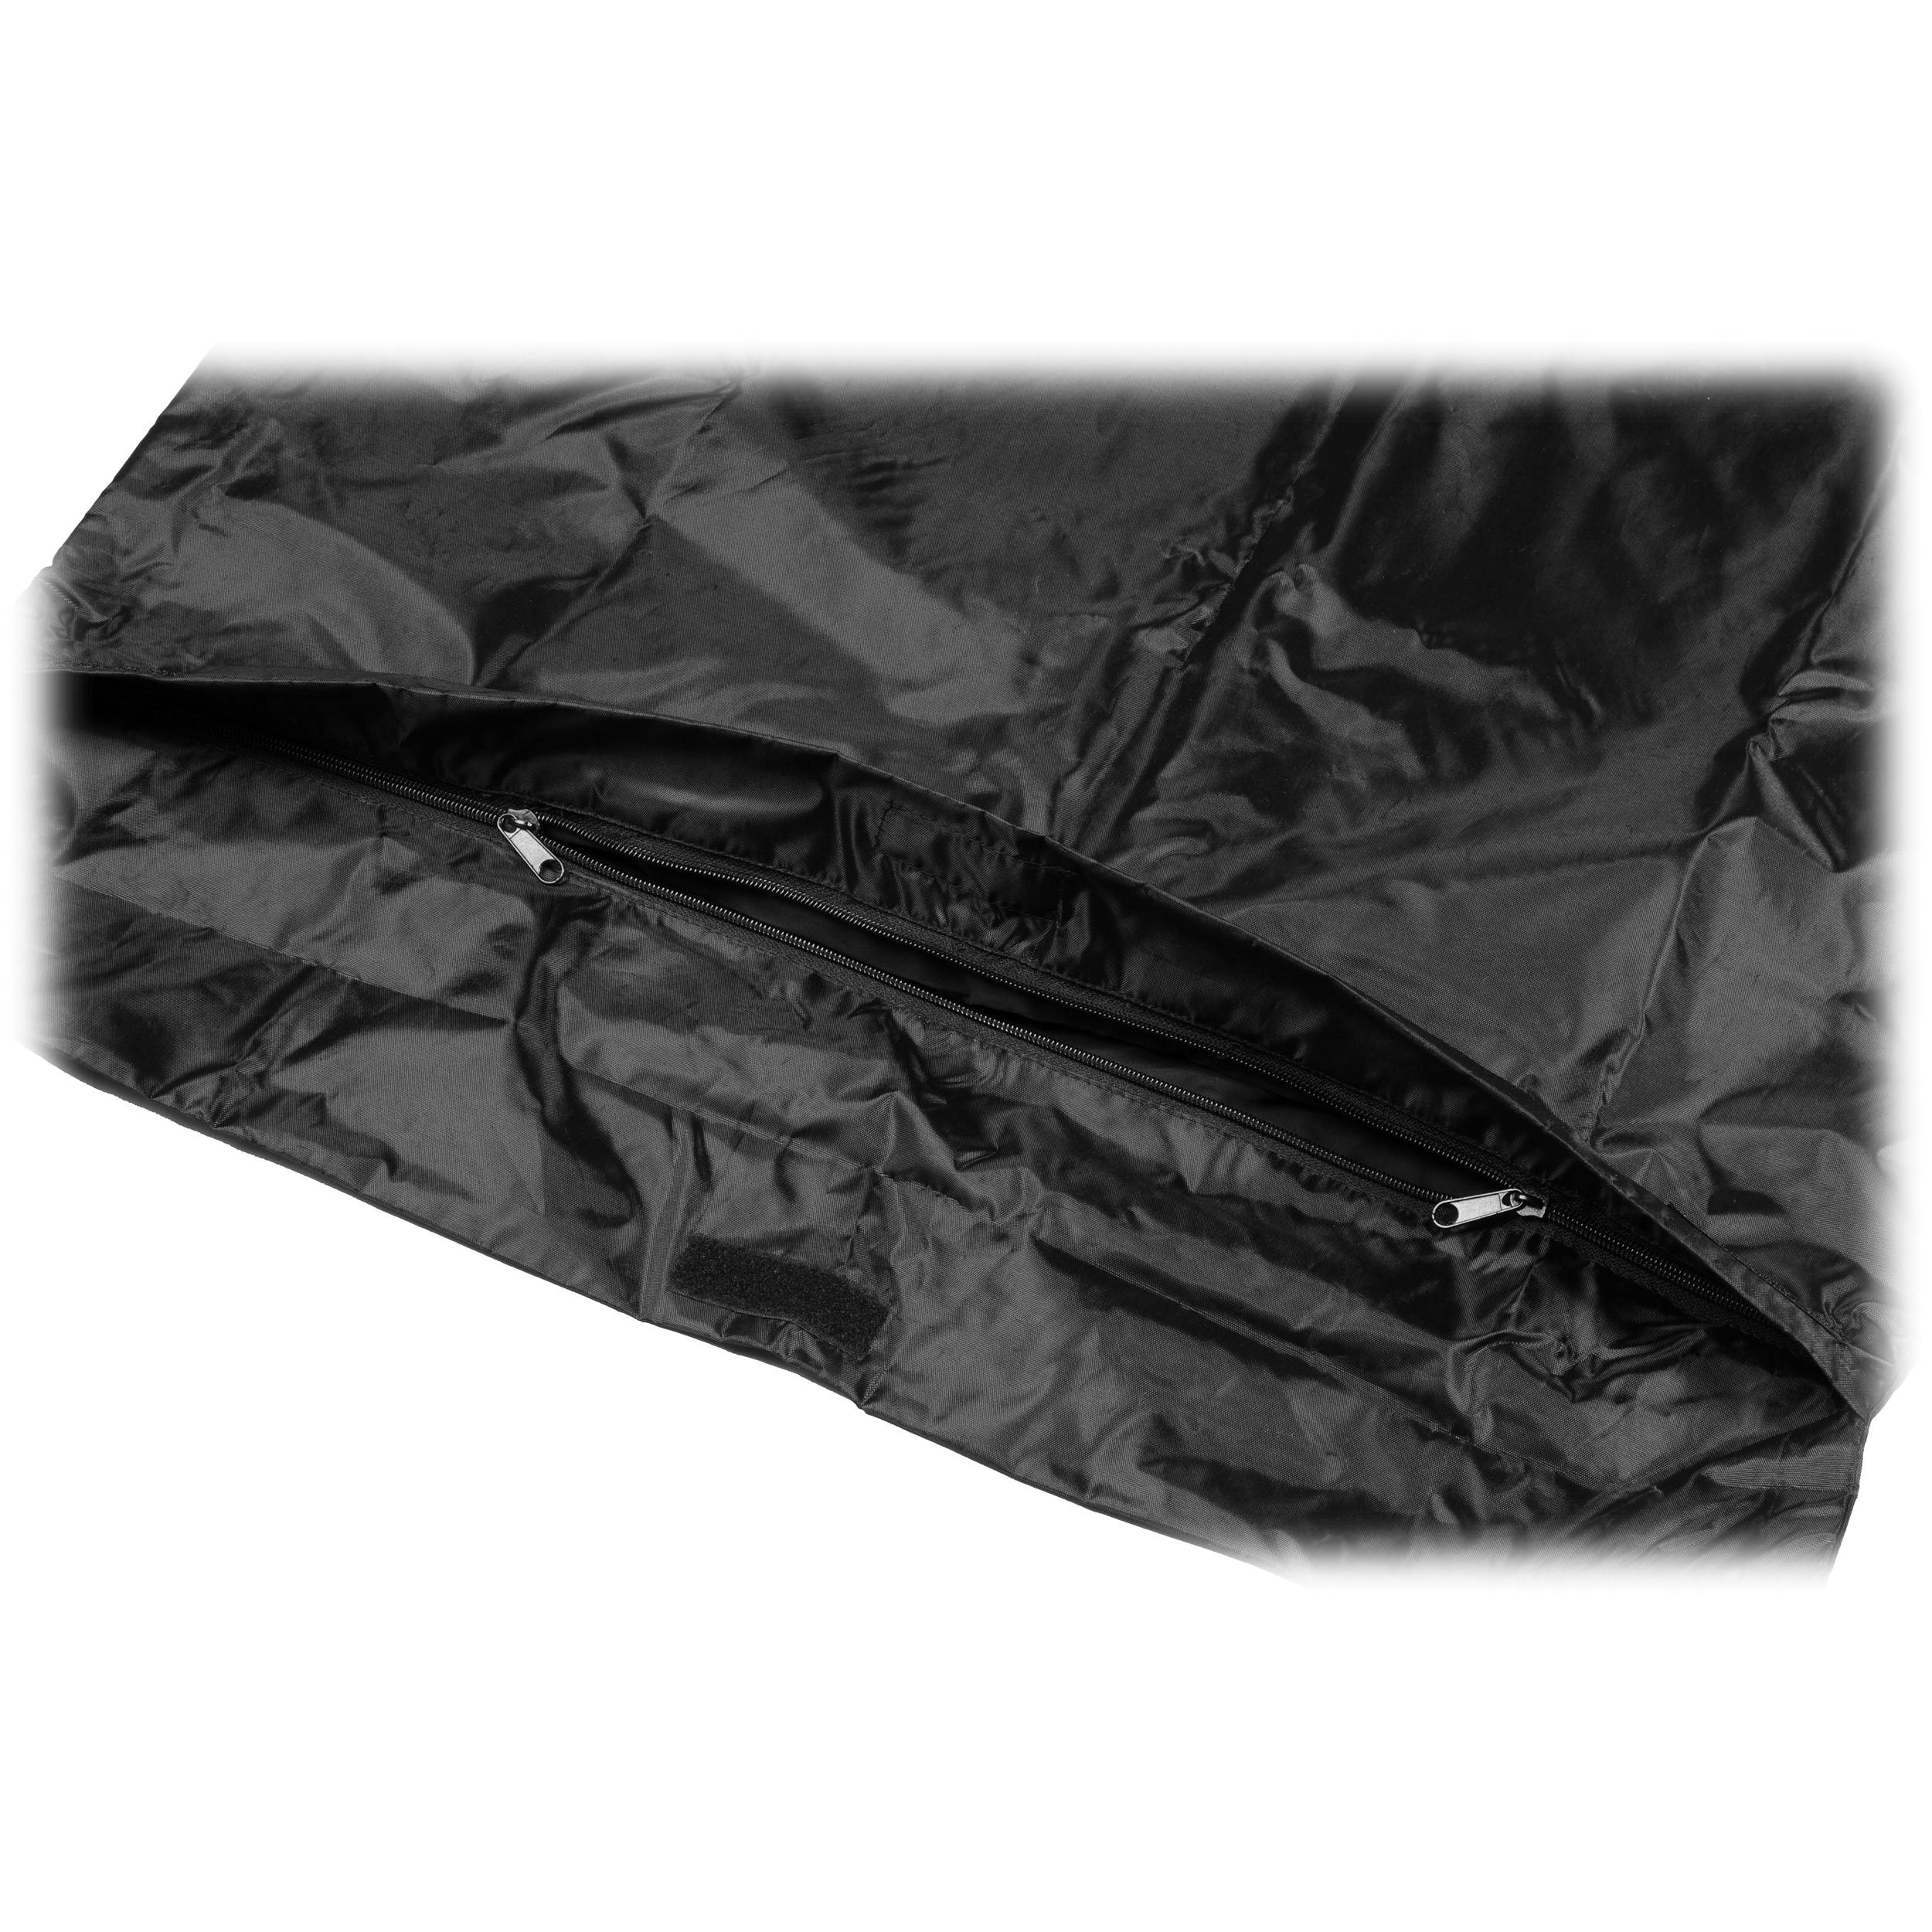 Darkroom Bag Film Changing Bag,Thick Cotton Fabric Anti-Static Material Darkroom Bag,for Film Changing Film Developing Pro Photography Supplies